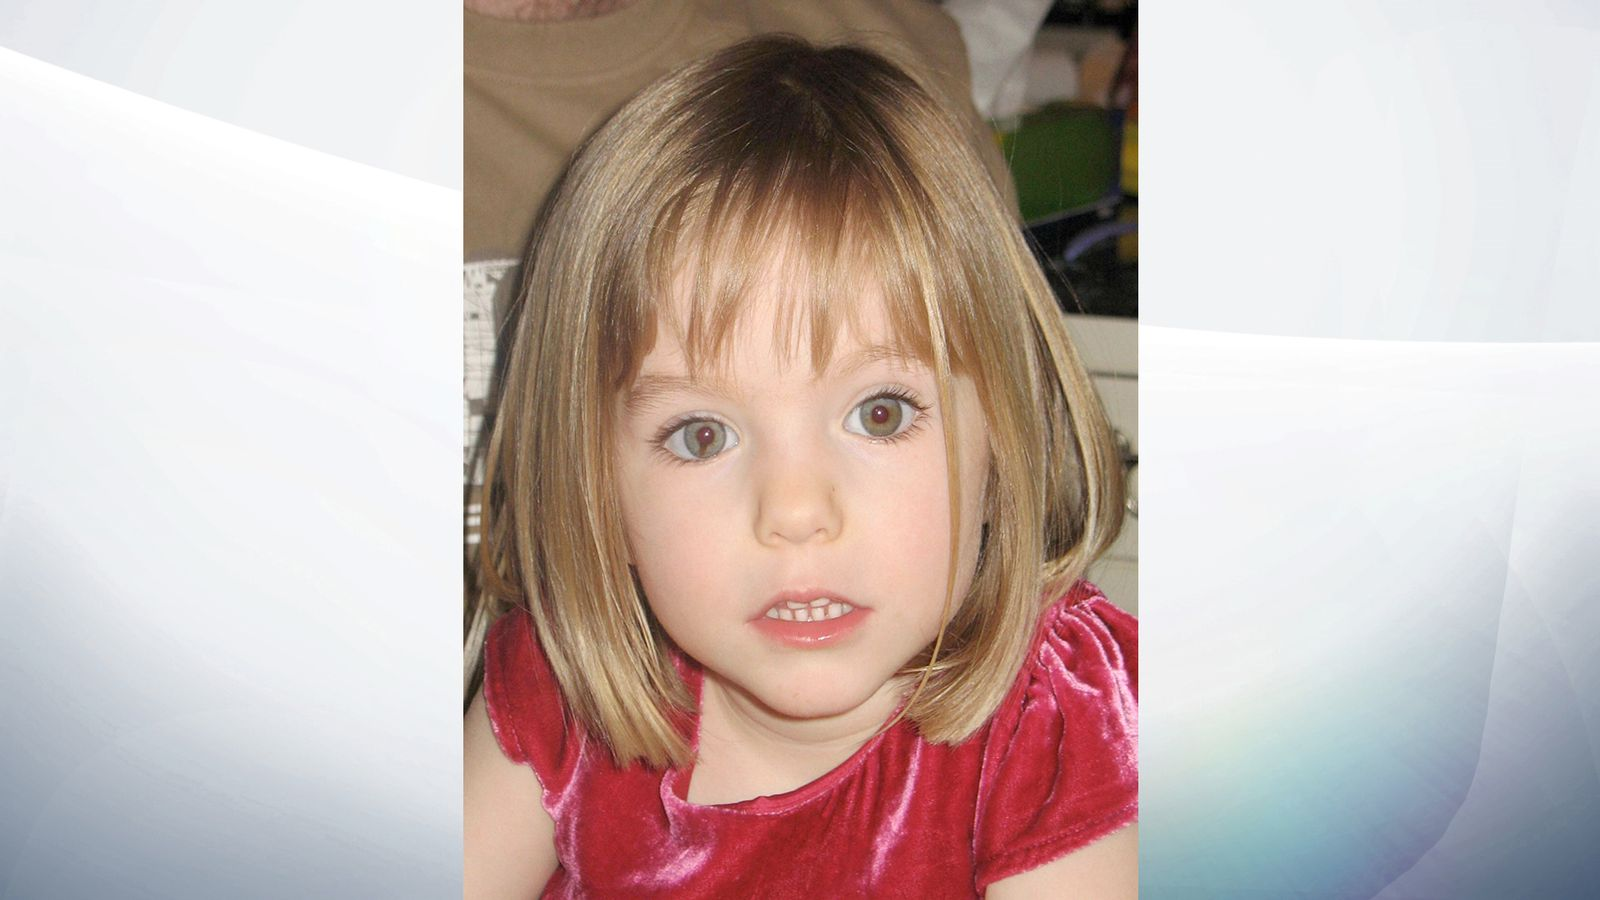 Missing Madeleine, aged three: search continues